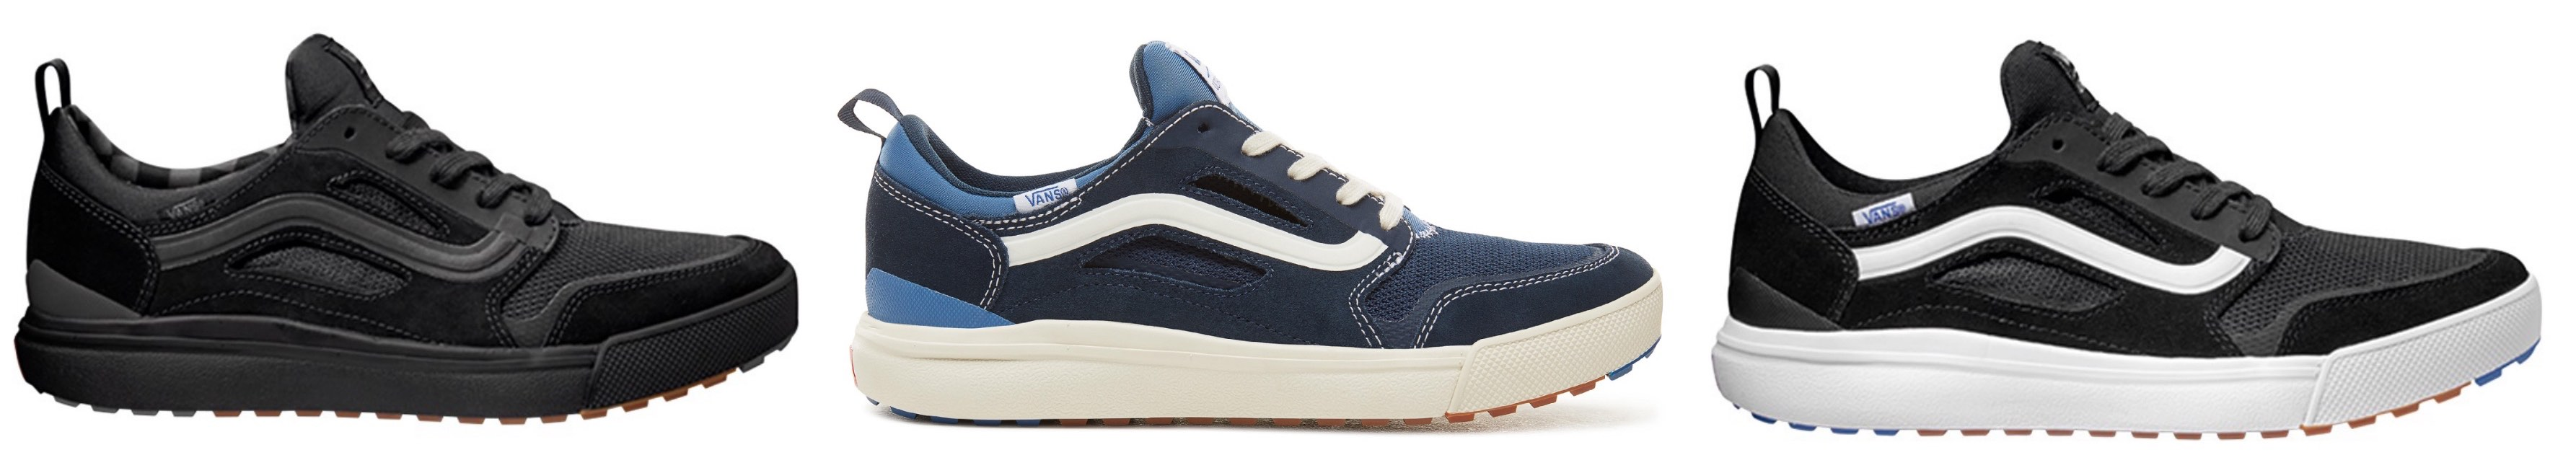 Vans UltraRange 3D colours available in South Africa